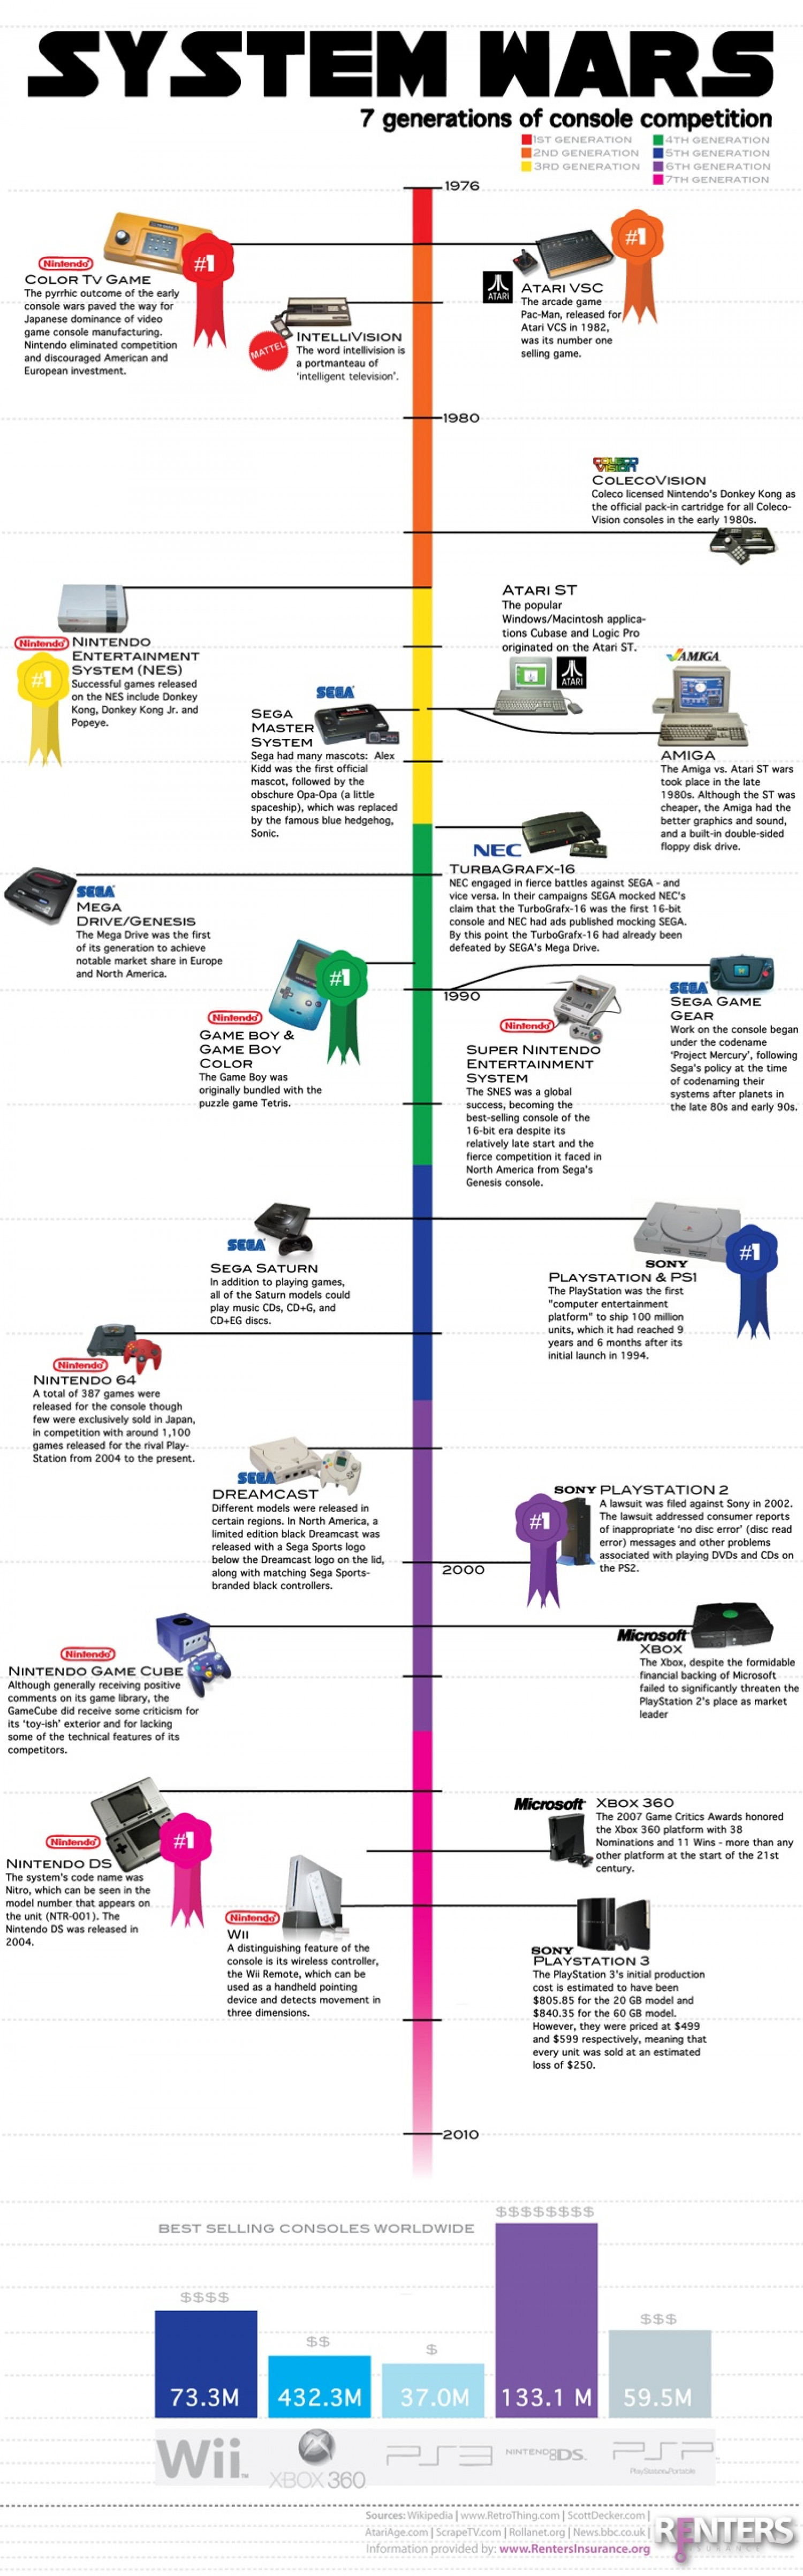 System Wars: 7 Generations of Console Competition Infographic